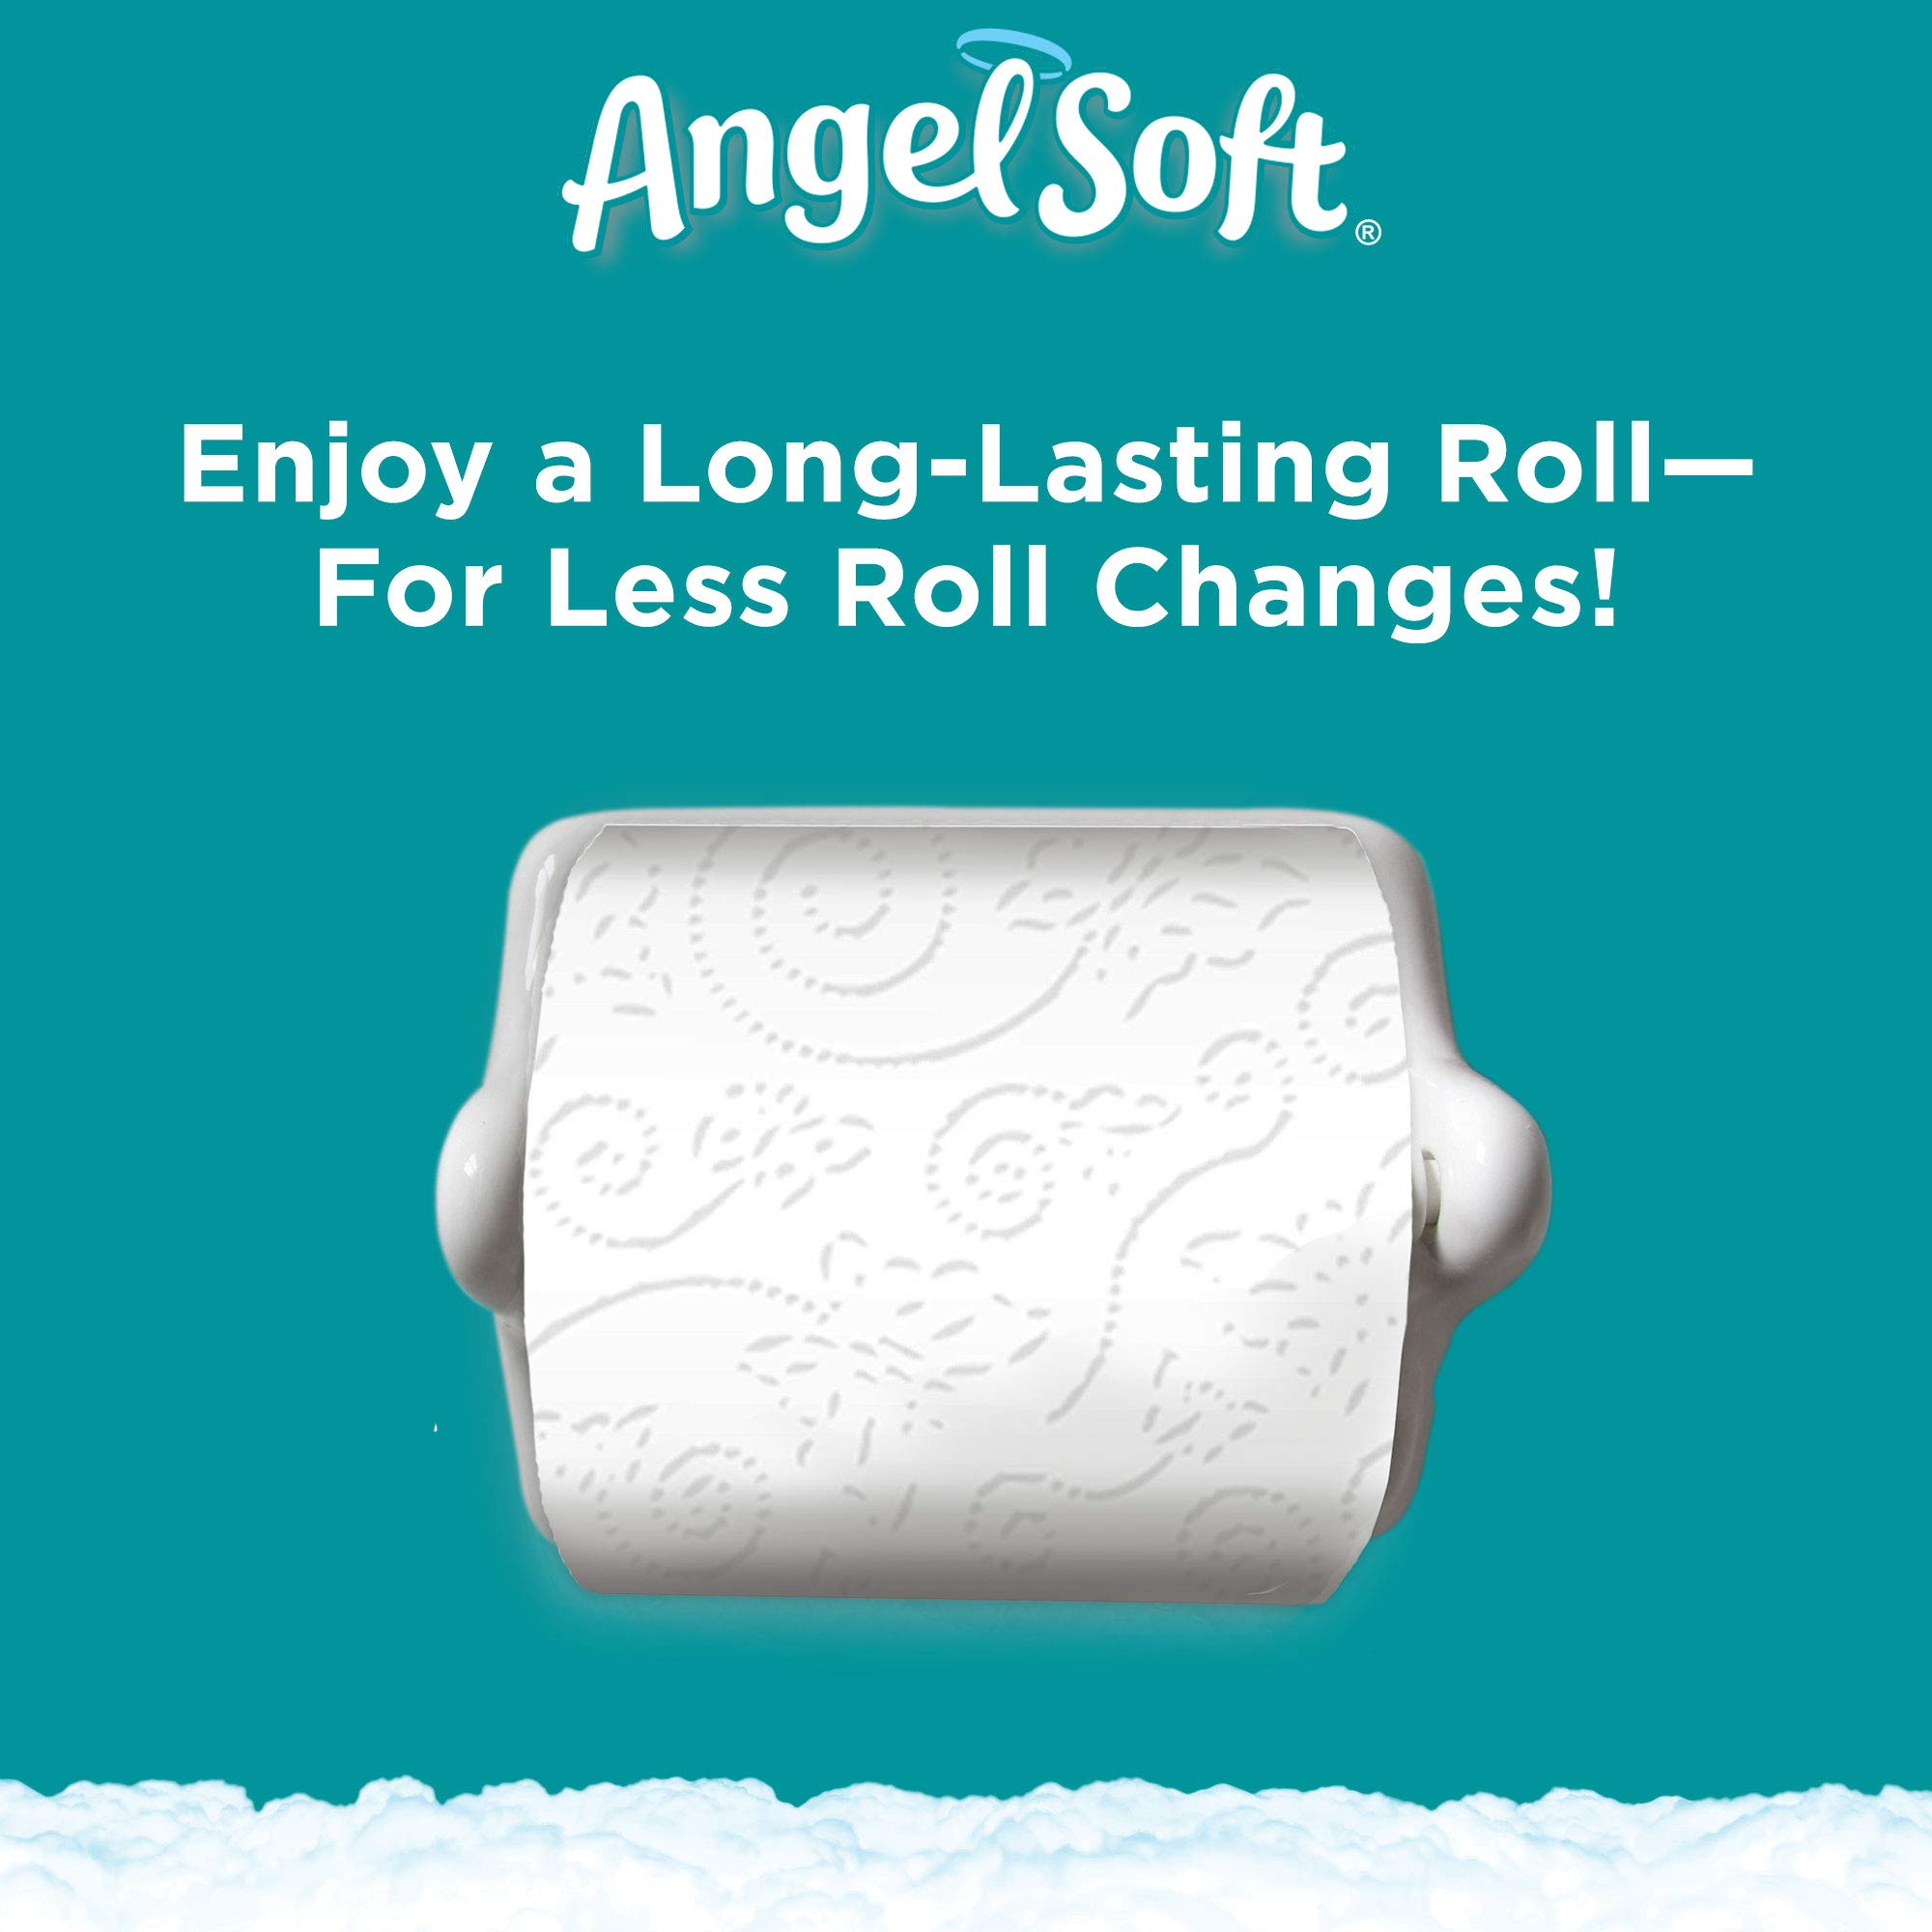 ANGEL SOFT Toilet Paper Bath Tissue, 36 Huge Rolls, 360+ 2-Ply Sheets Per Roll by Angel Soft (Image #4)